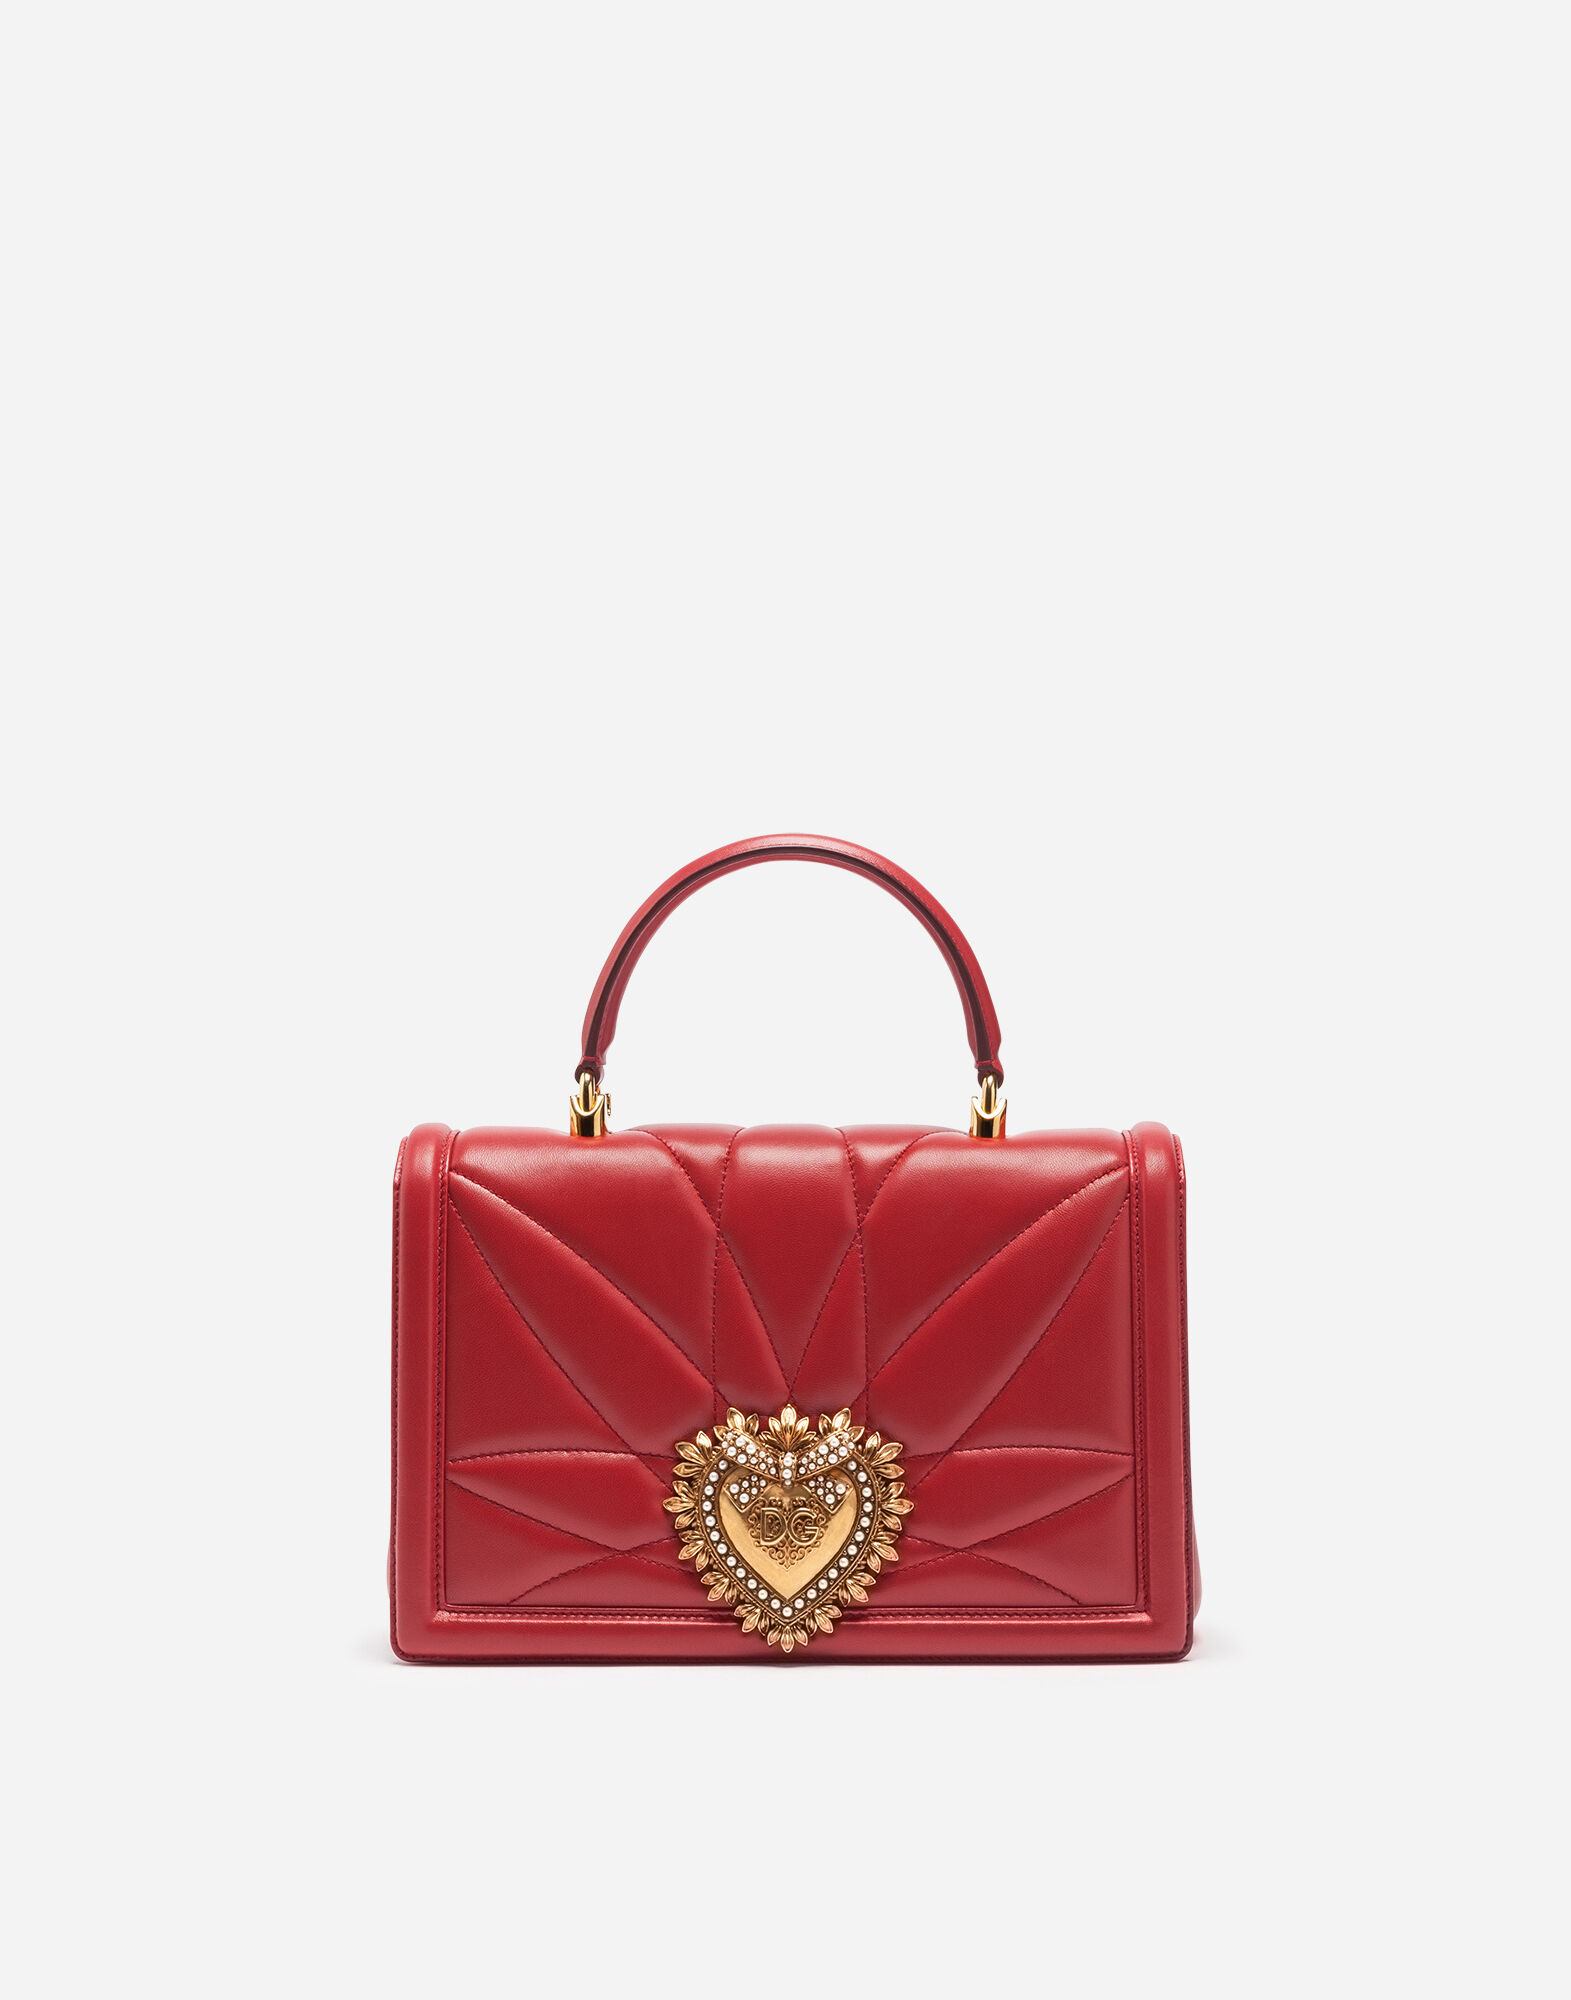 Shoulder Bag for Women, Hibiscus Red, Leather, 2017, one size Dolce & Gabbana